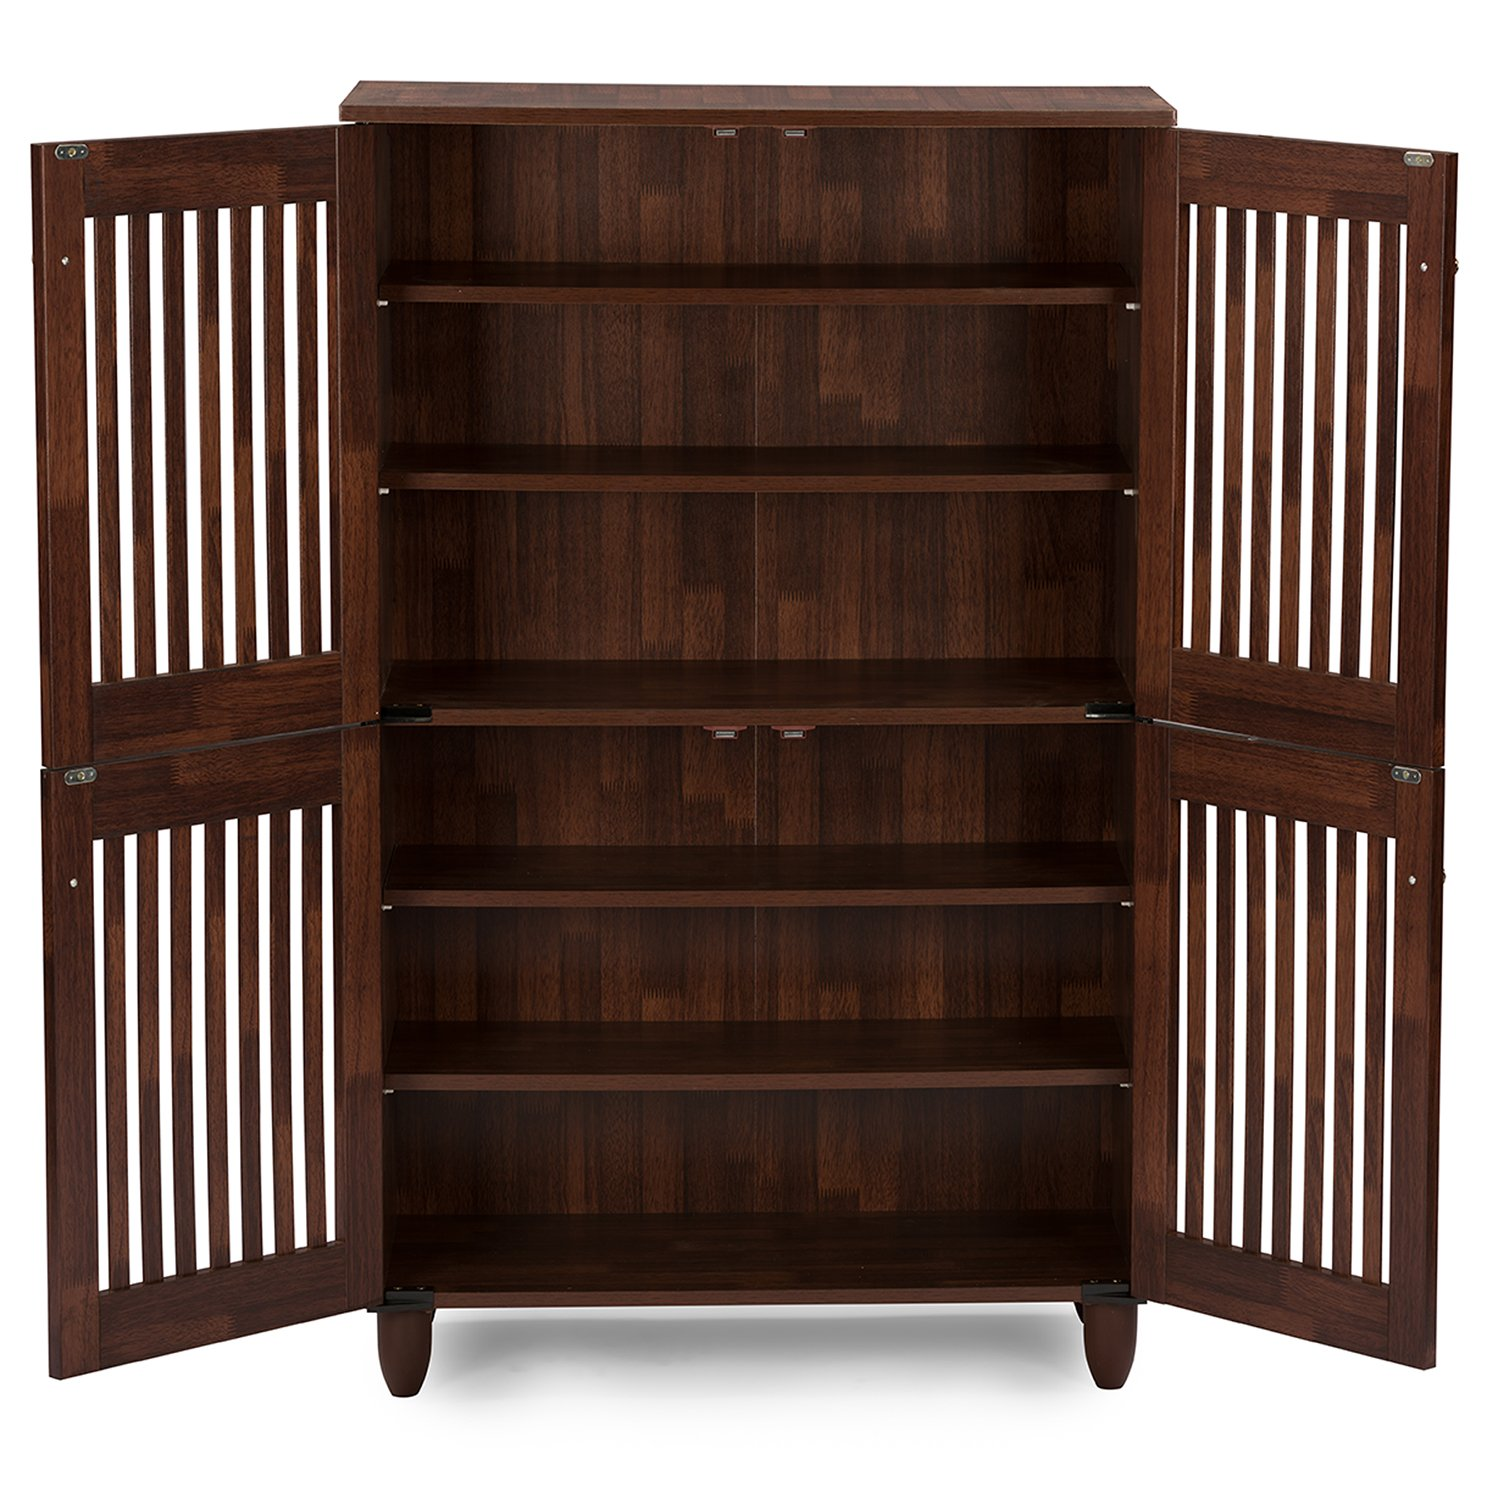 Charming Amazon.com: Wholesale Interiors Baxton Studio Fernanda Modern And  Contemporary 4 Door Oak Brown Wooden Entryway Shoes Storage Tall Cabinet:  Kitchen U0026 Dining